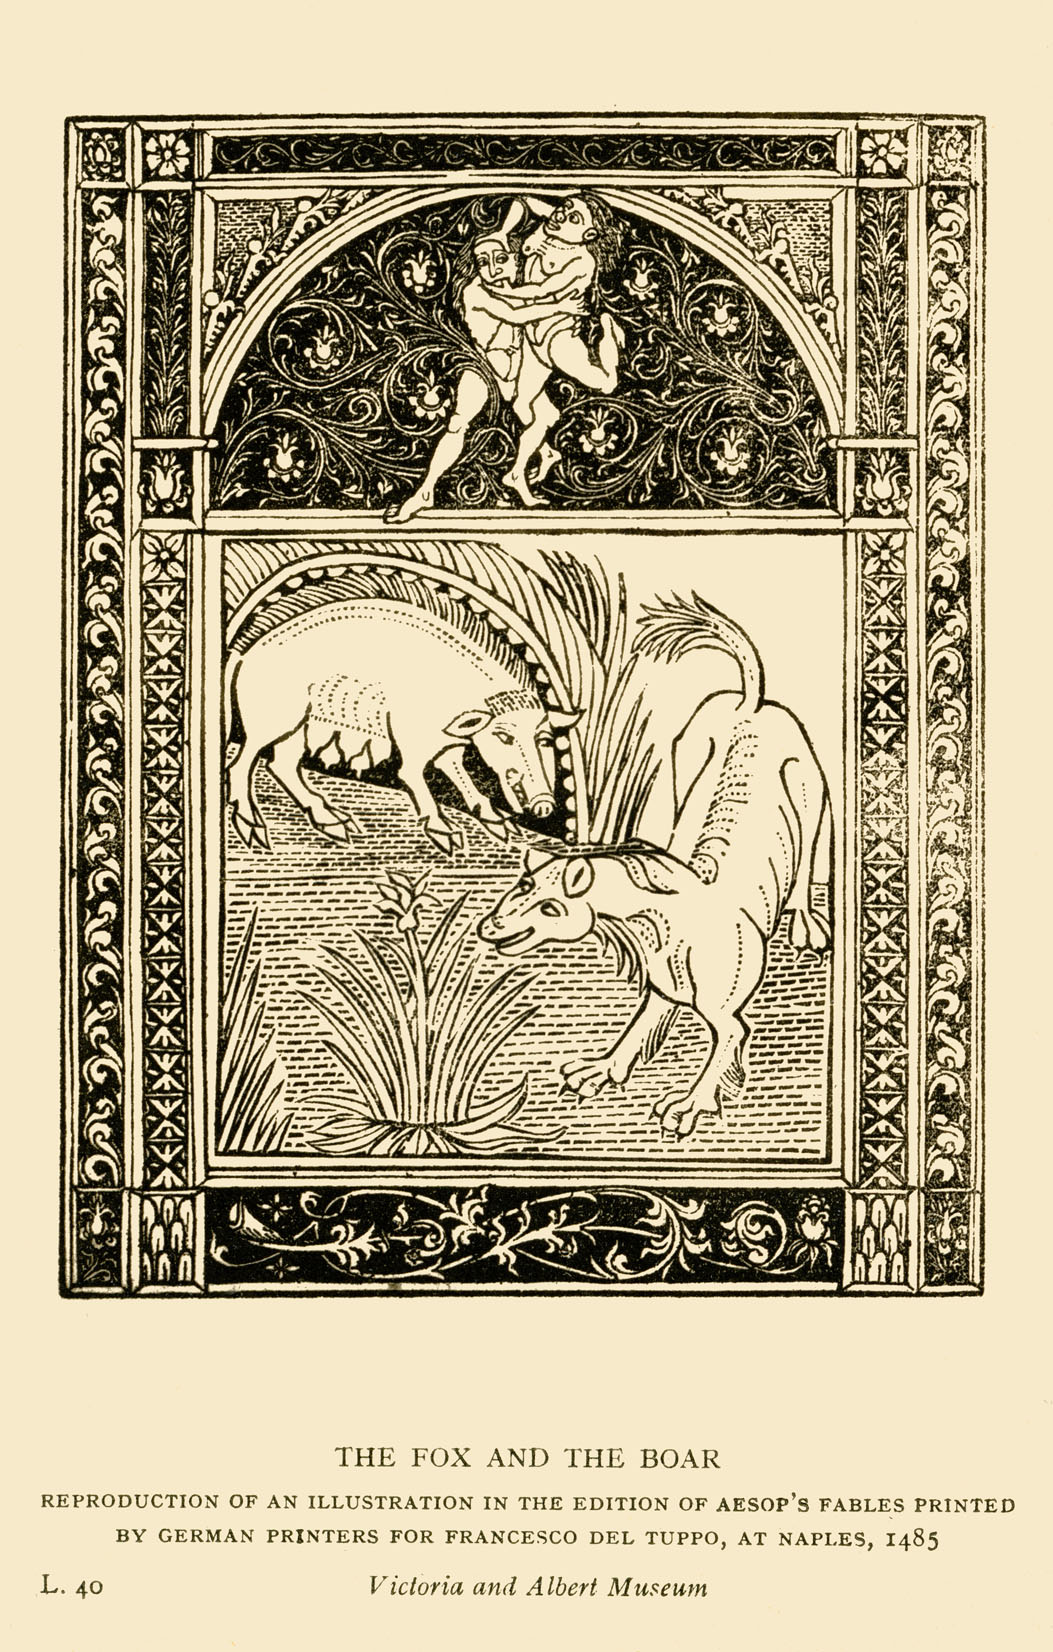 Aesop 's fables: The Fox and the Boar. Illustration after 1485 edition printed in Naples by German printers for Francesco del Tuppo. Reproduction. Aesop (Esop), Greek writer, c. 620-564 BCE.  (Photo by Culture Club/Getty Images) *** Local Caption ***